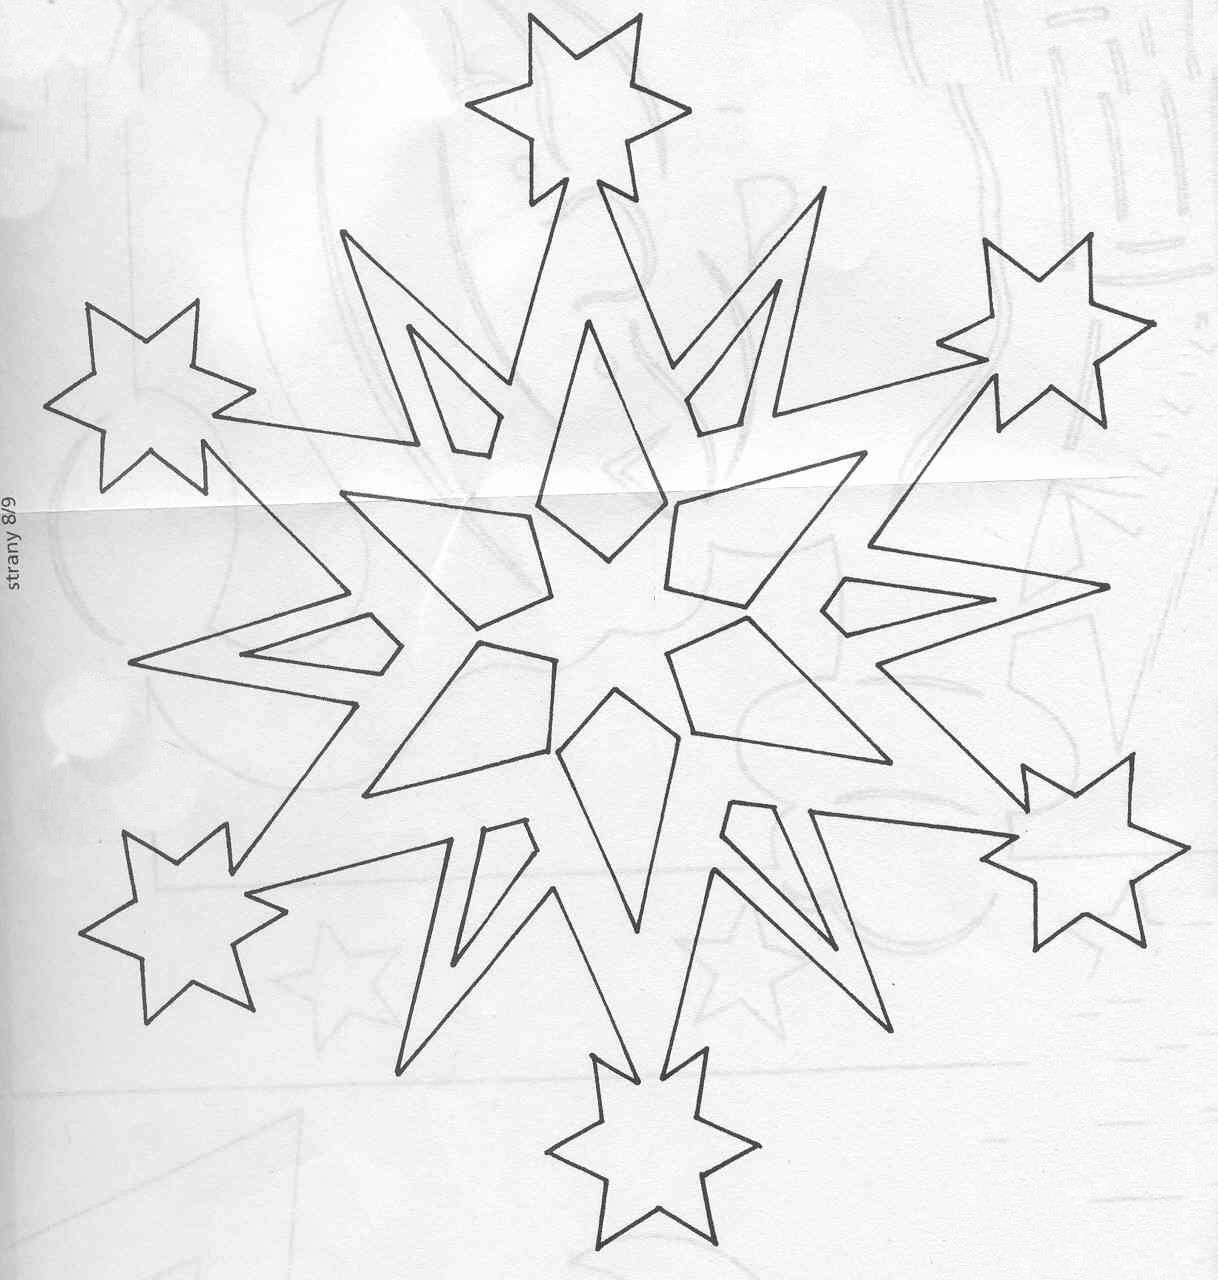 Pin by Mary on CP - Stars - Moon + Sun | Pinterest | Paper cutting ...